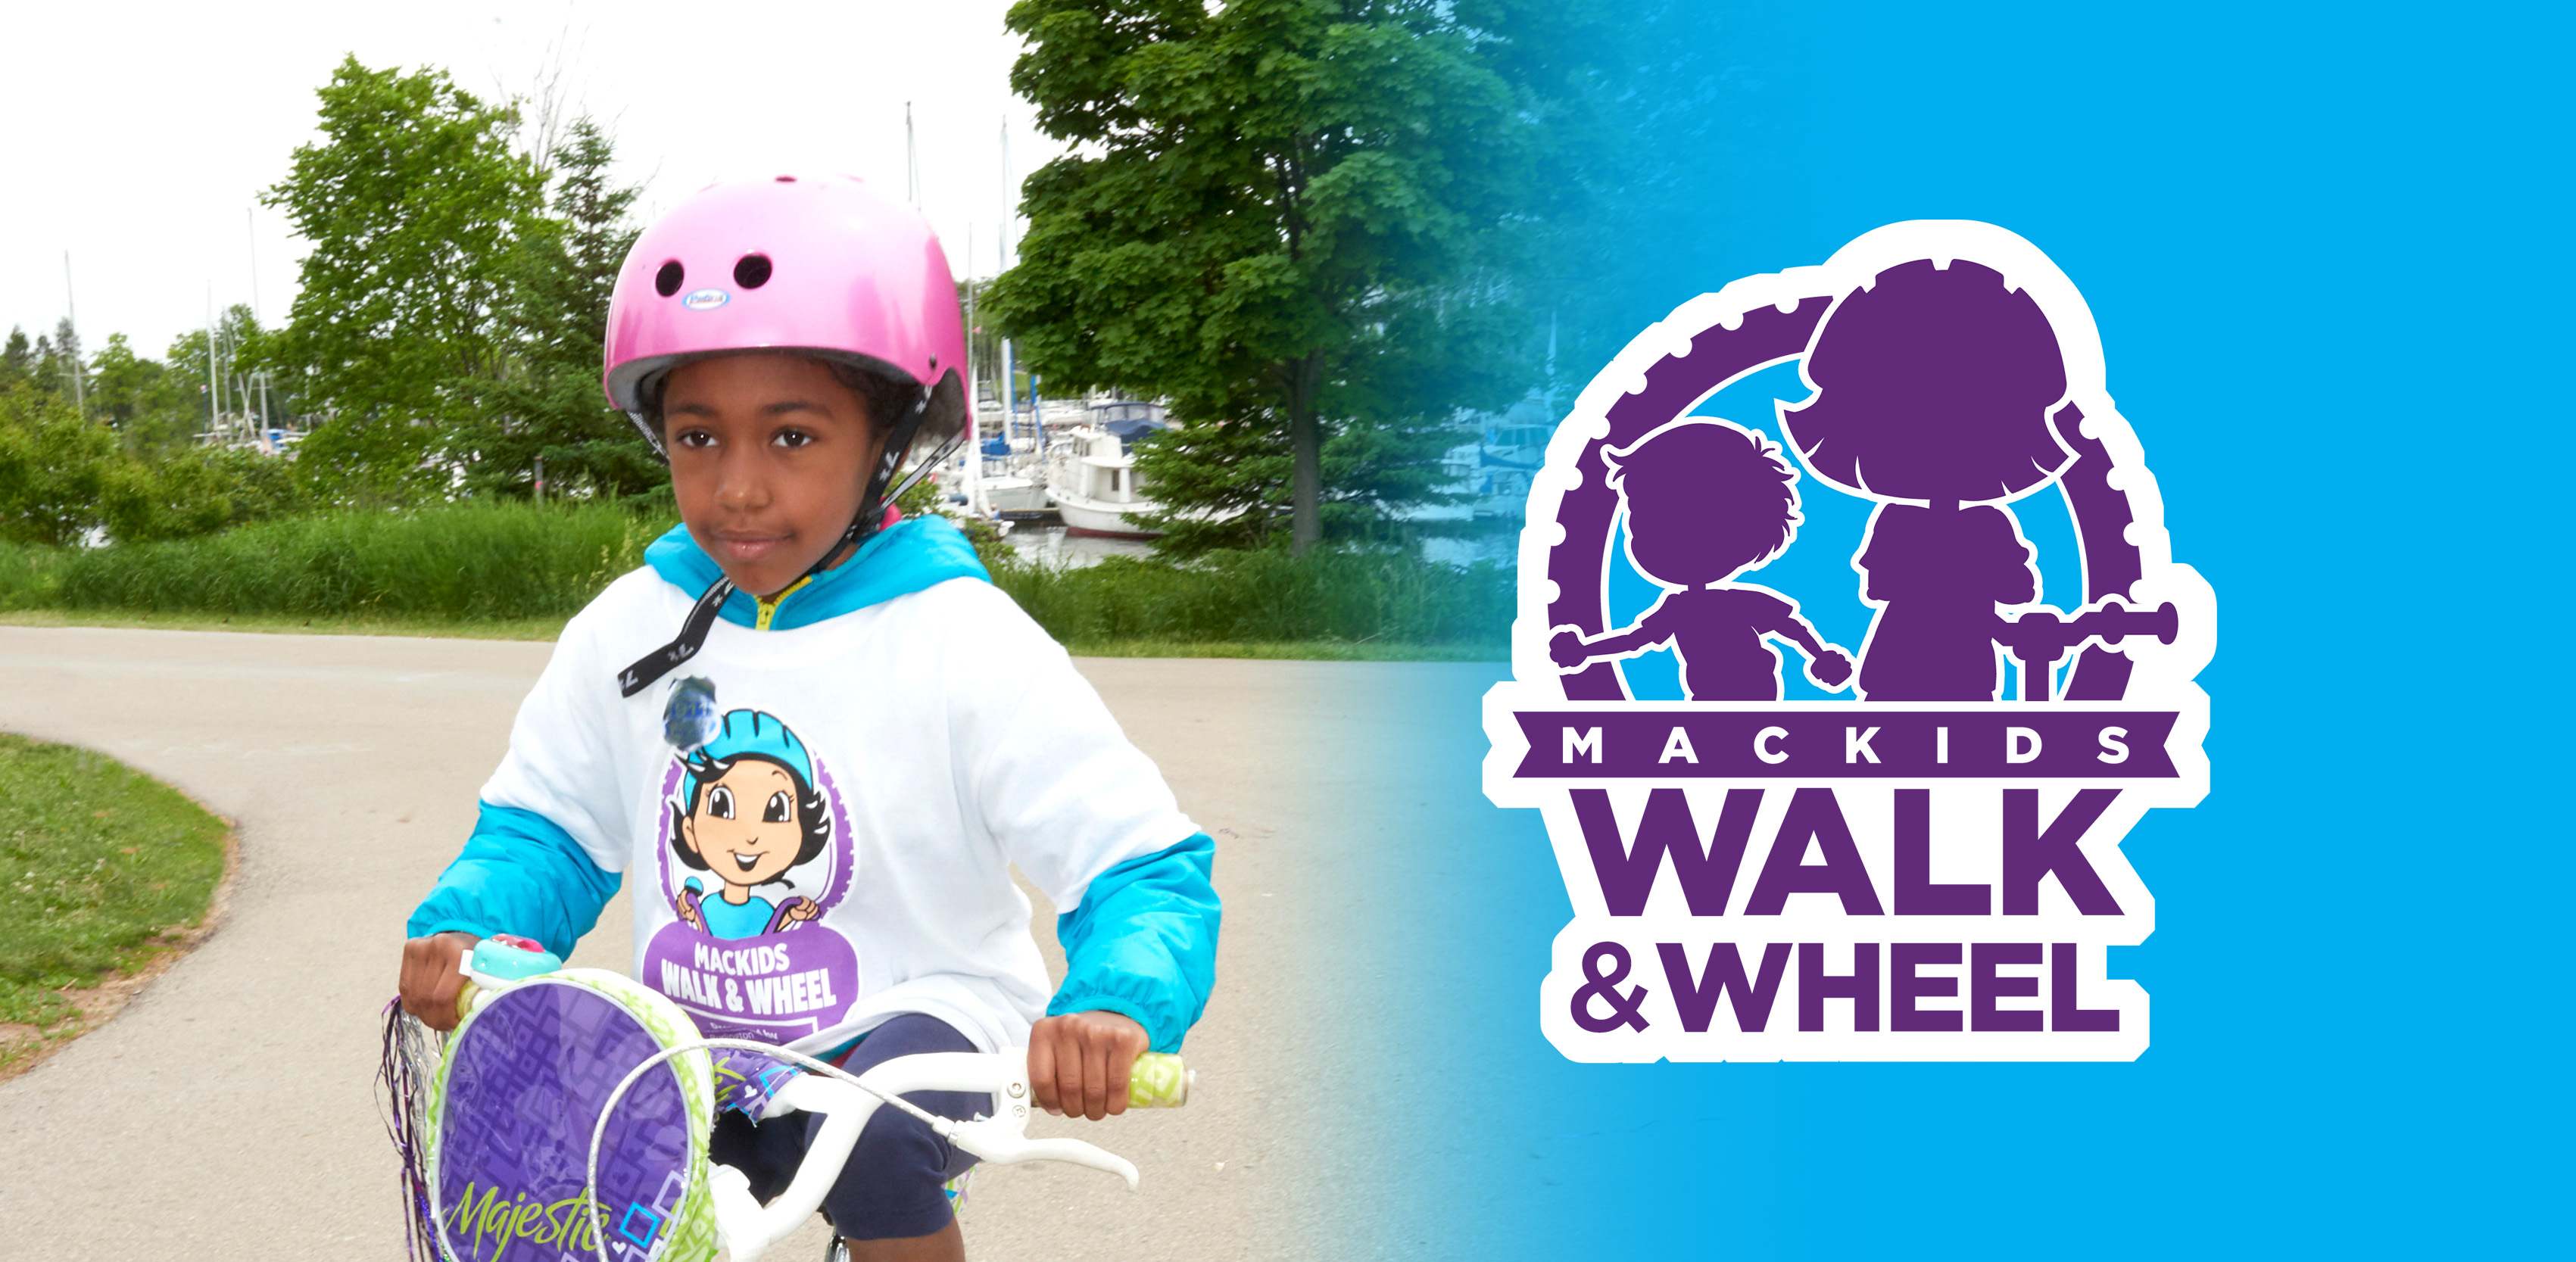 A child in a Walk and Wheel t-shirt rides her bike